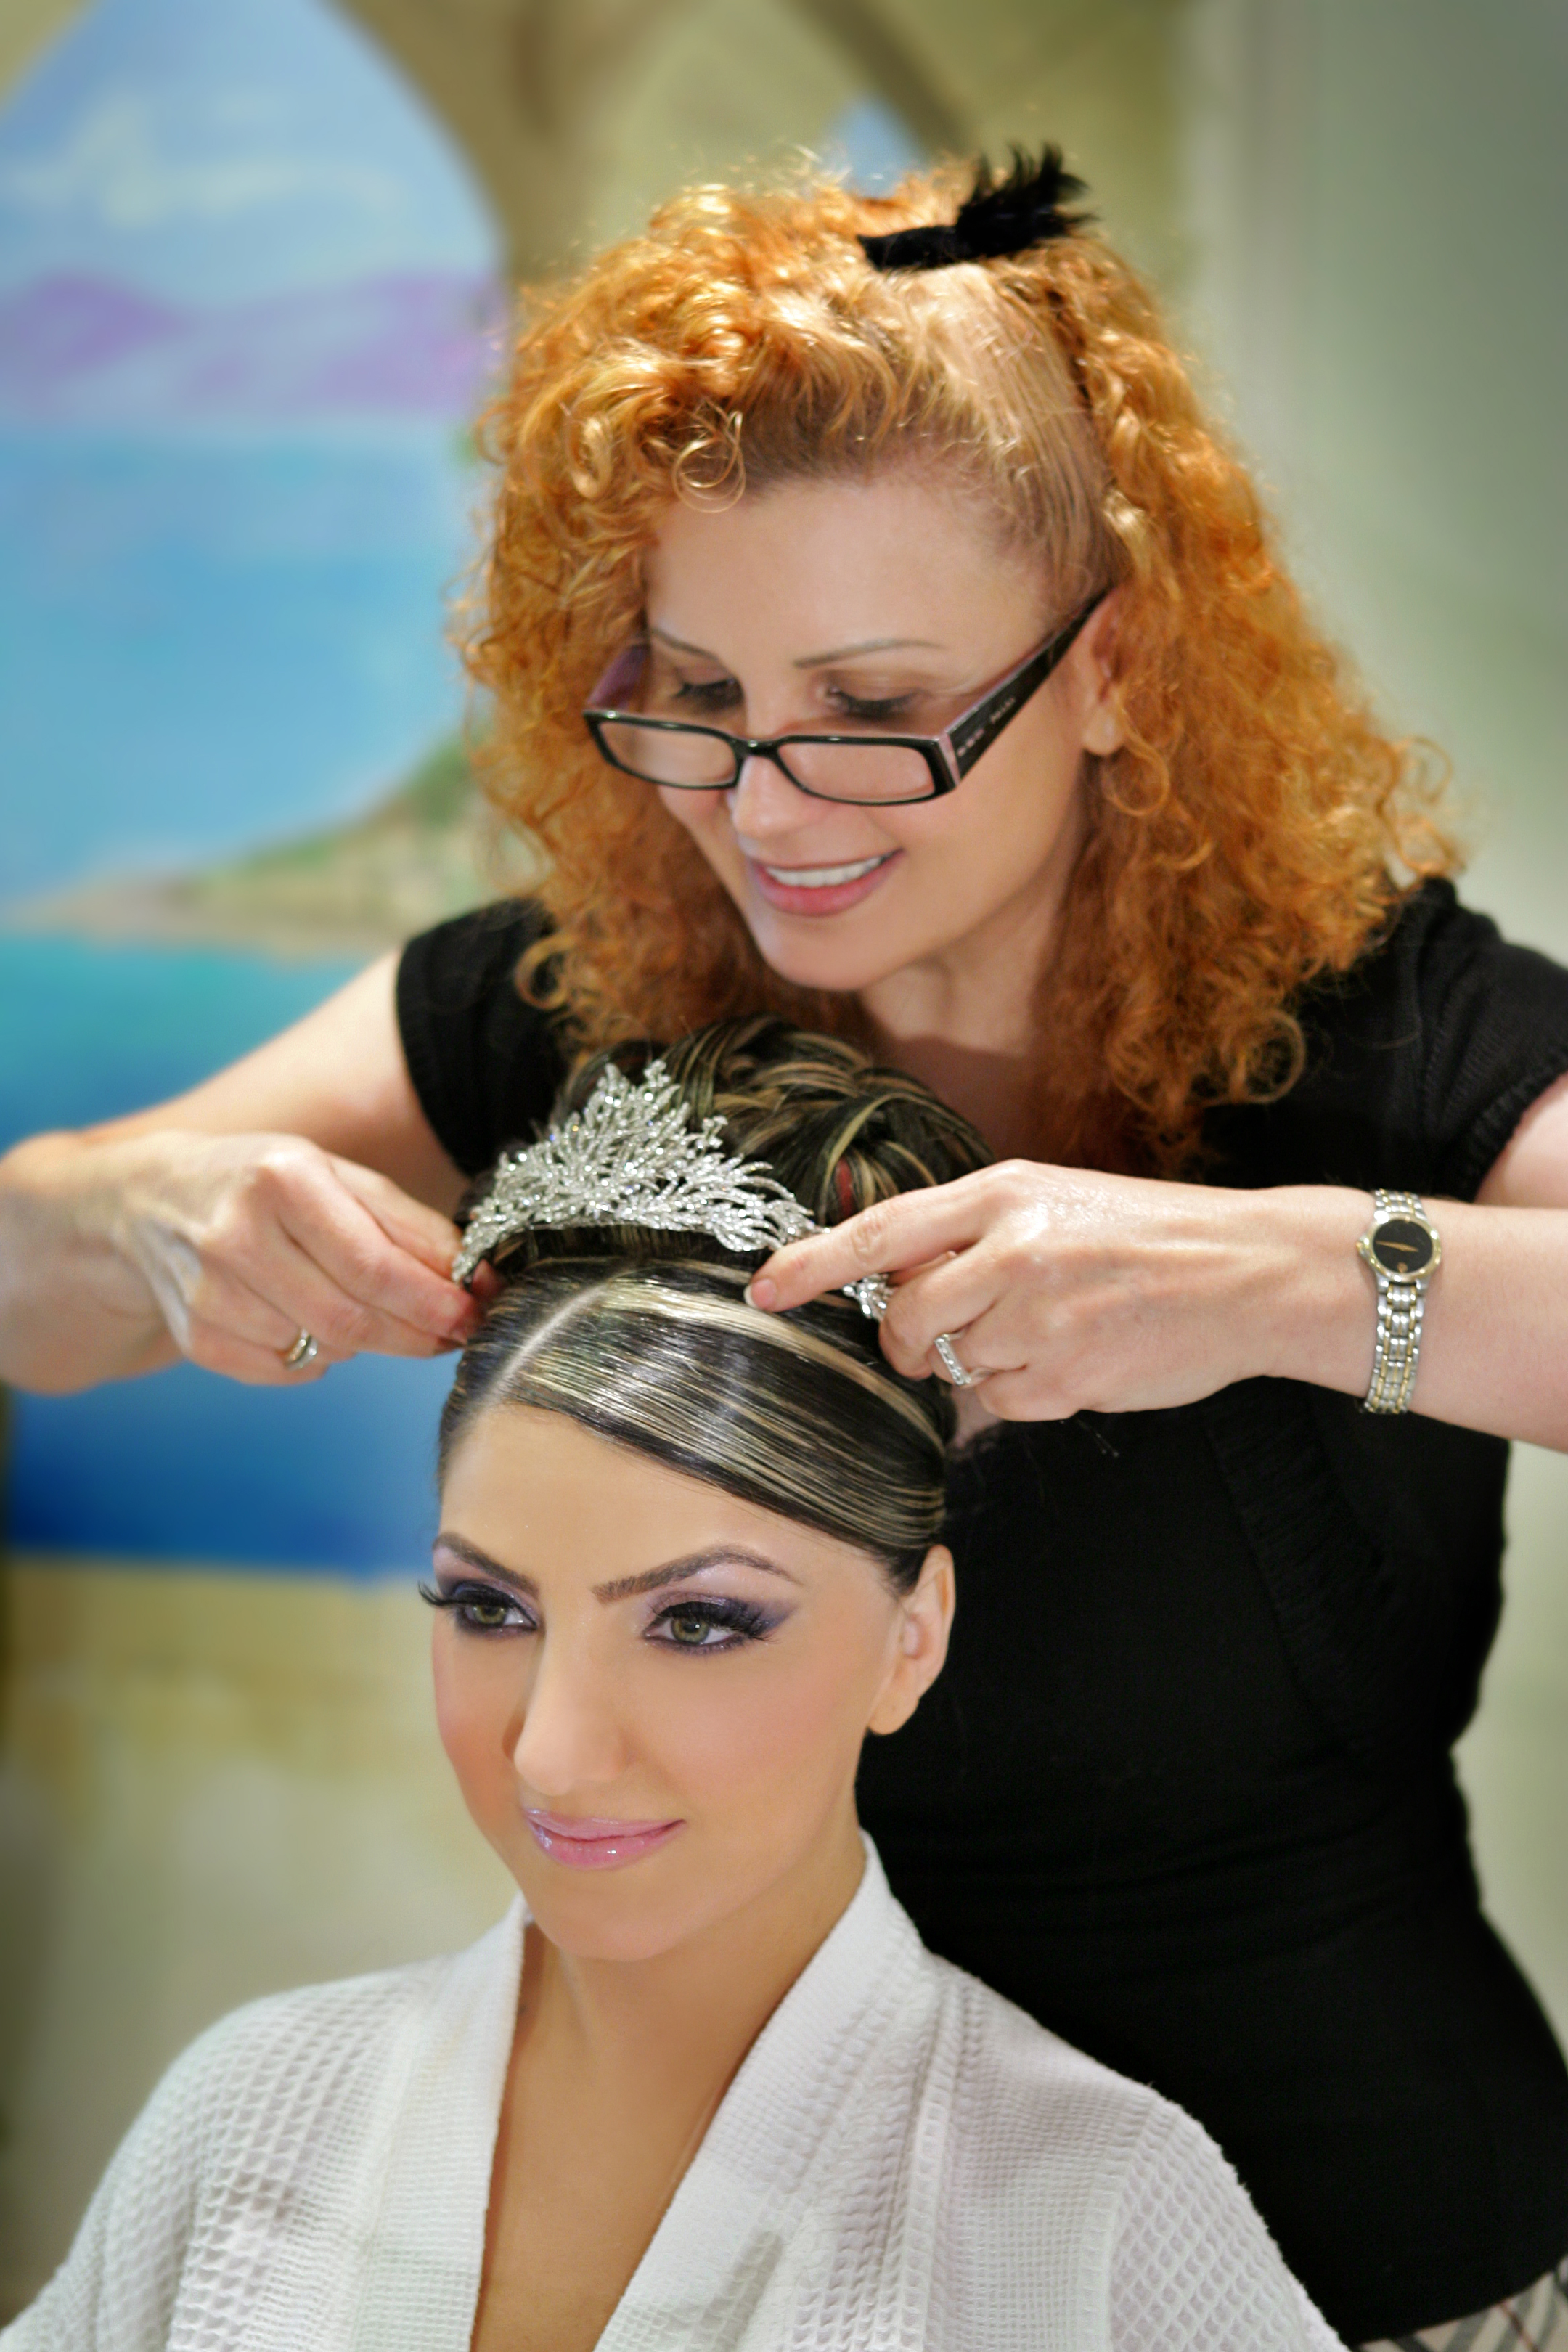 Bella Nella Bride One-of-a-Kind Salon Exclusively For The